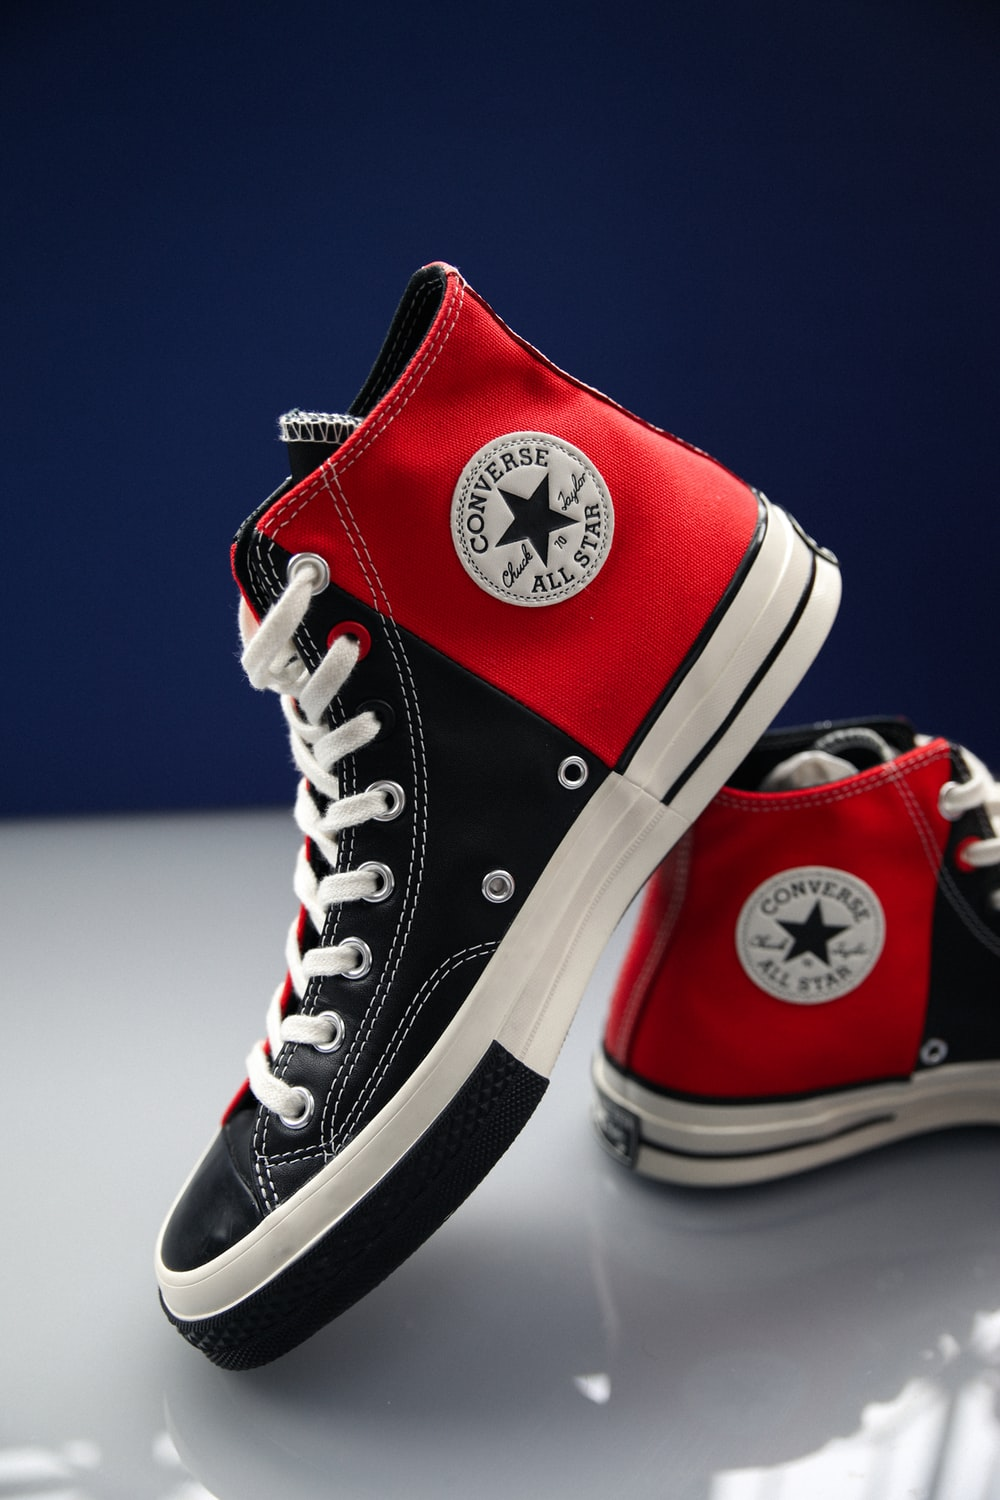 red converse all star high top sneakers